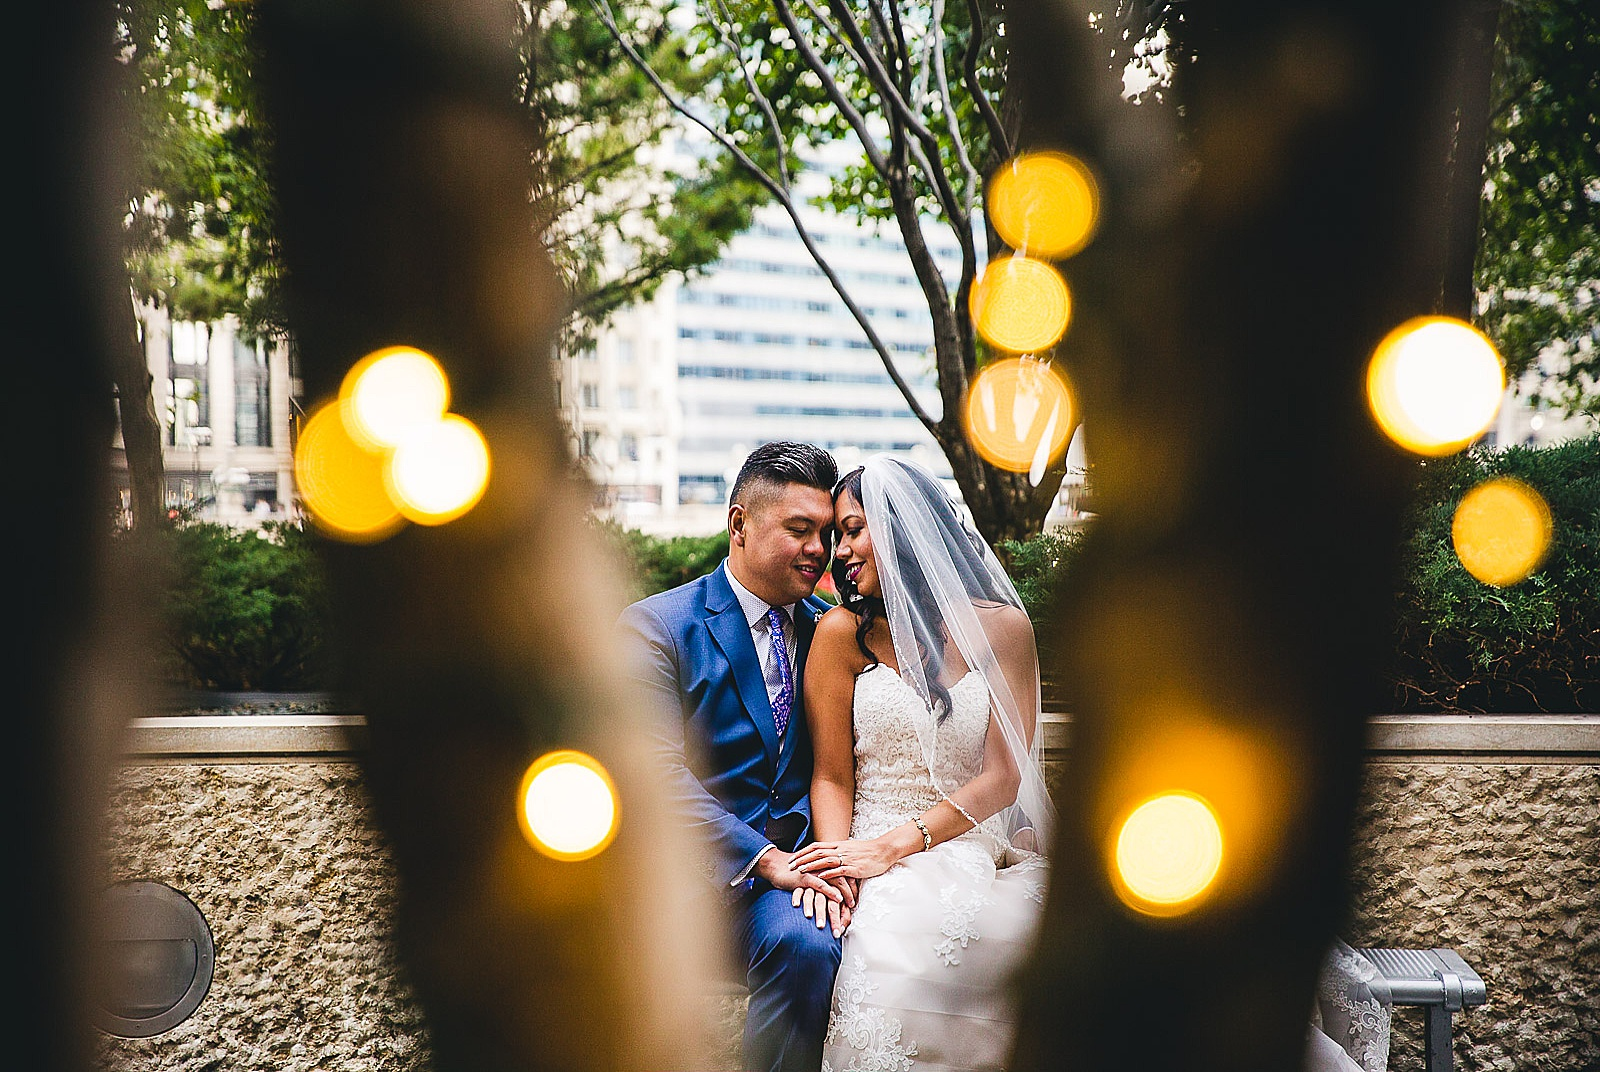 26 wedding photos in chicago best - LondonHouse Wedding Photos // Mari + Kevin